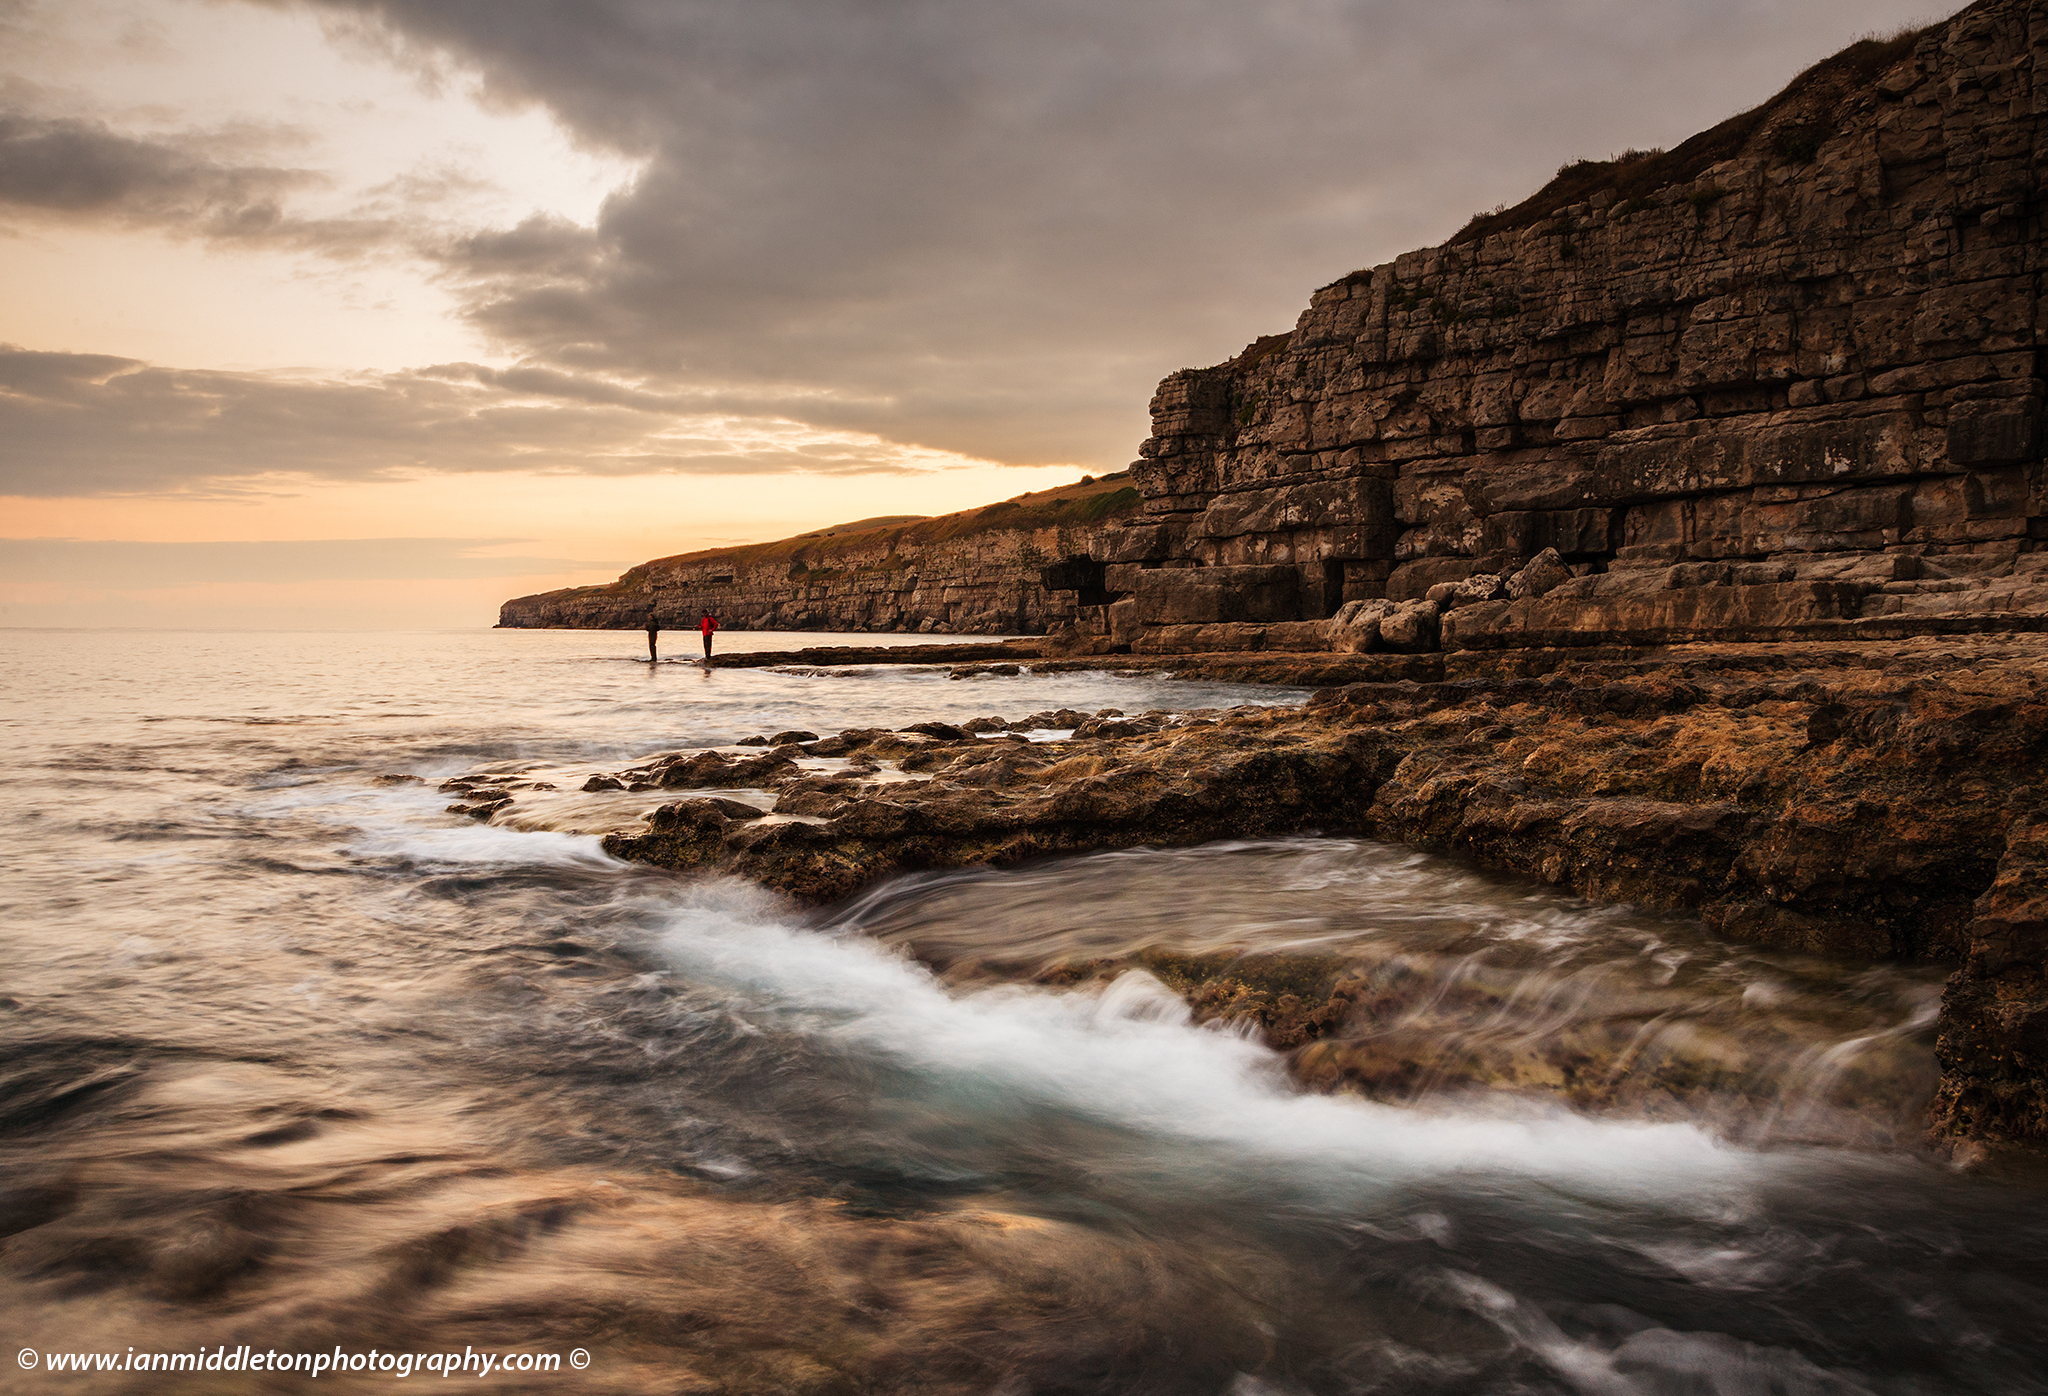 Seacombe Bay and Cliffs on the Jurassic Coast in Dorset, England. Seacombe Bay is one of the many stunning locations to visit on the Jurassic coast, a UNESCO World Heritage Site in southern England